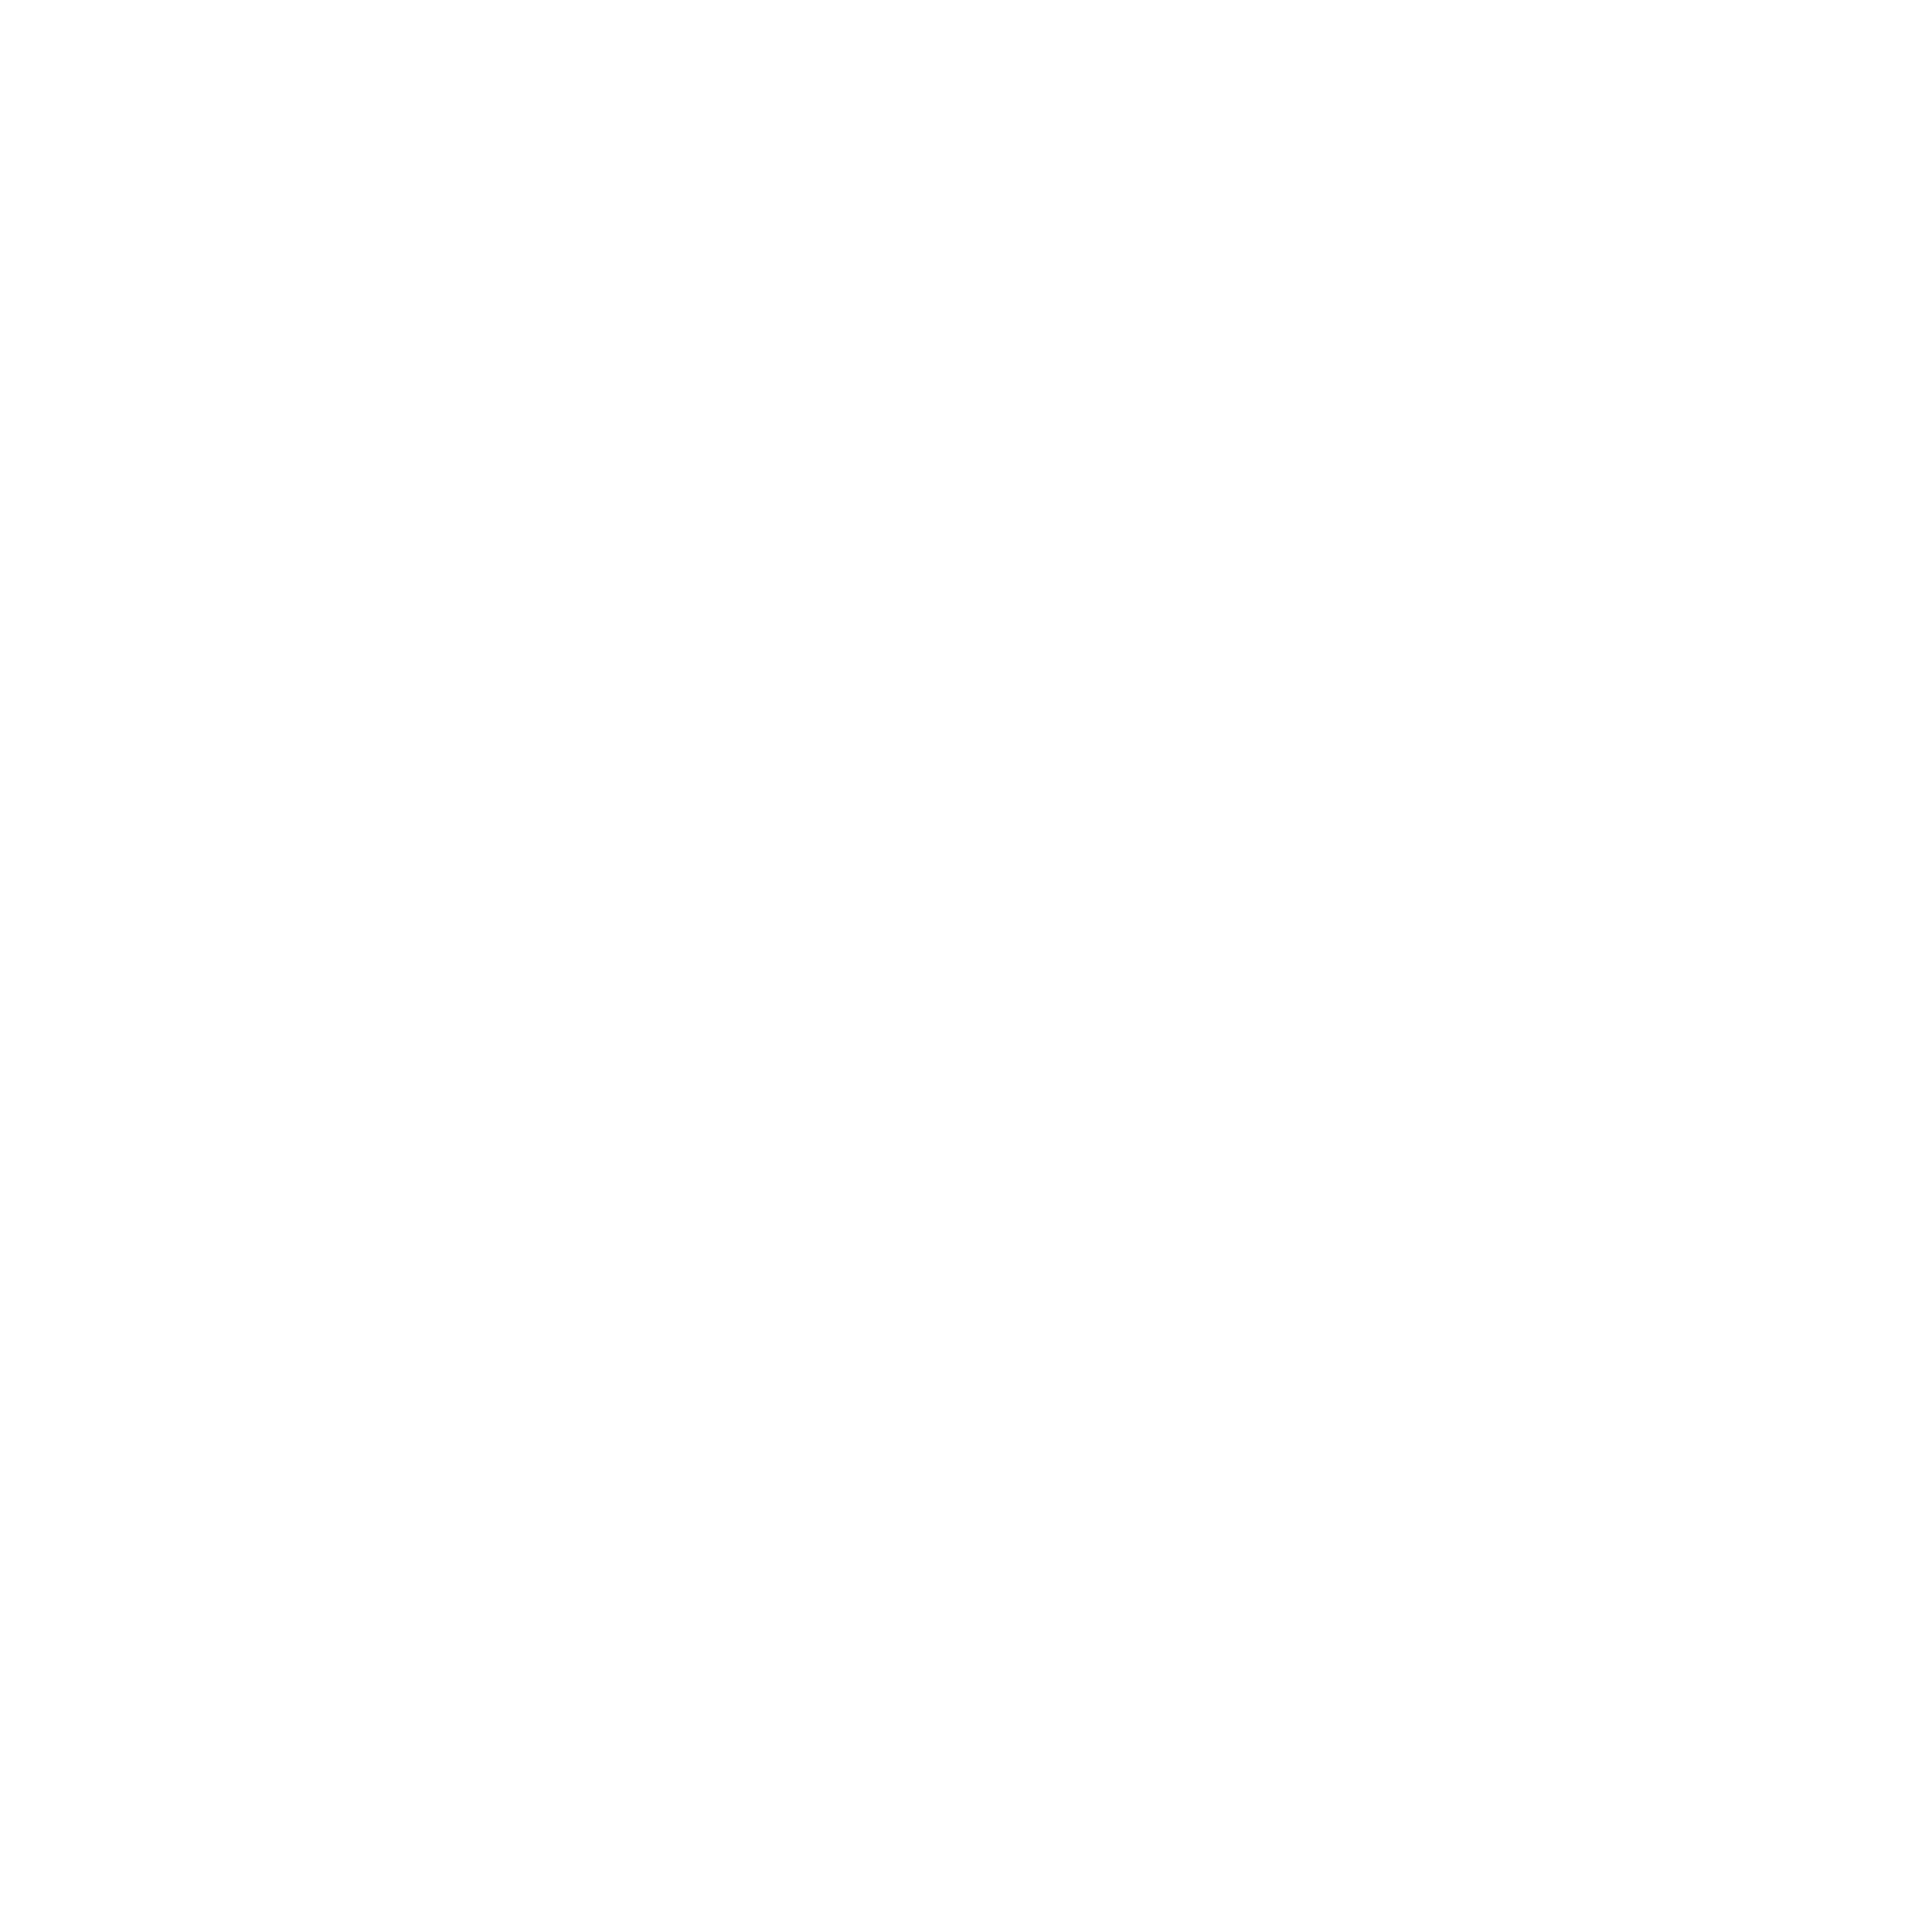 White Phone Icon Png Transparent #267570.